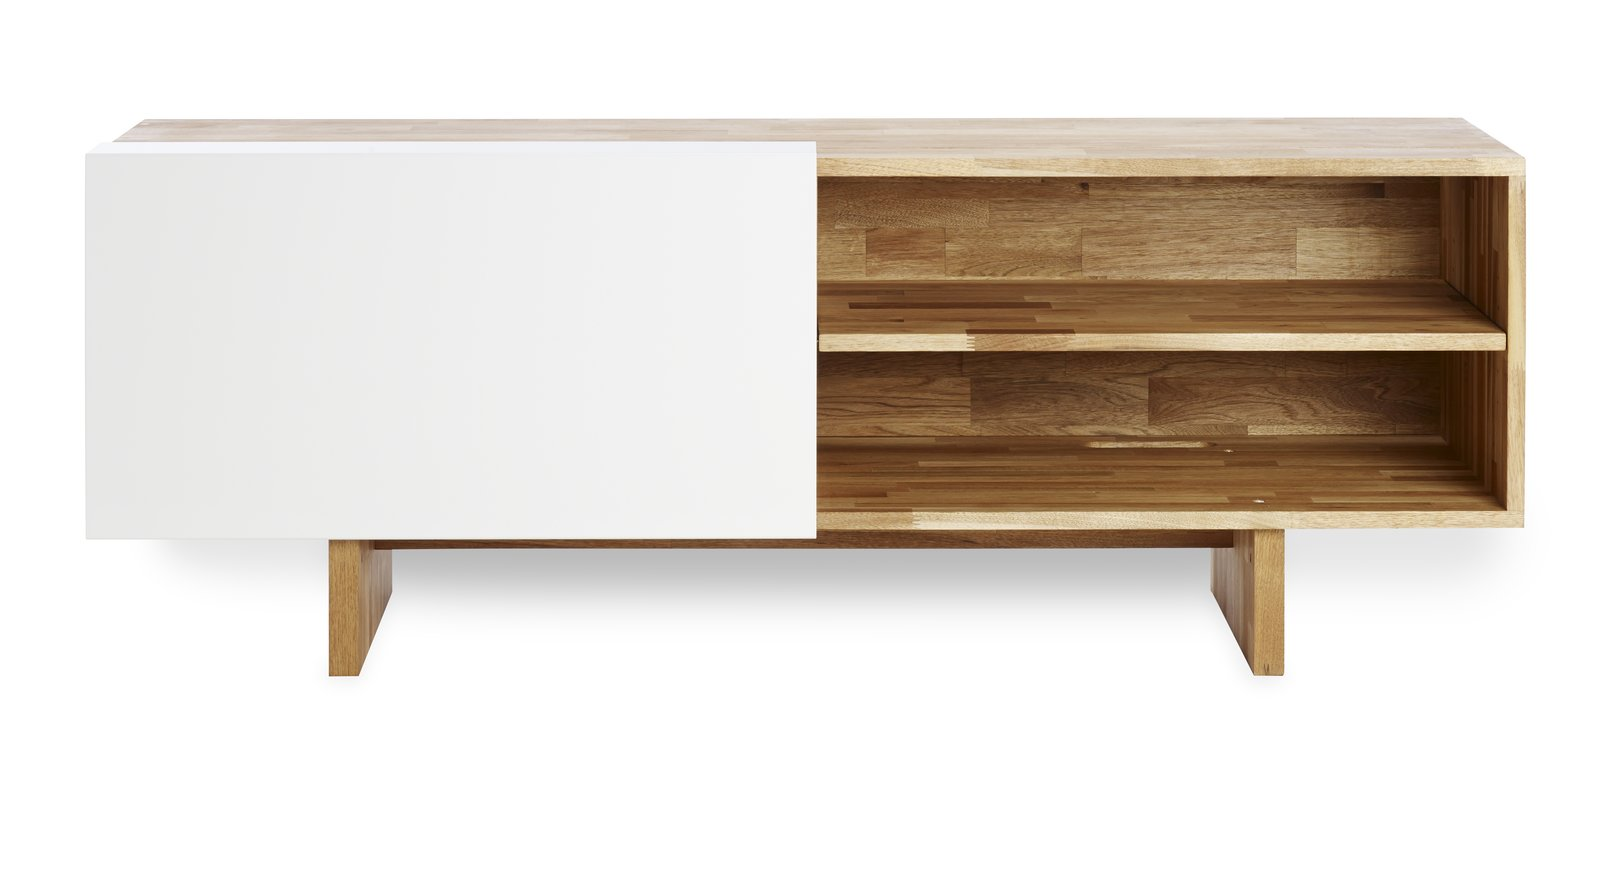 The Entertainment Shelf includes a panel that slides to reveal easy-to-reach shelves on either side.  Modern Furniture from Space-Saving Wood Furniture Designed in California